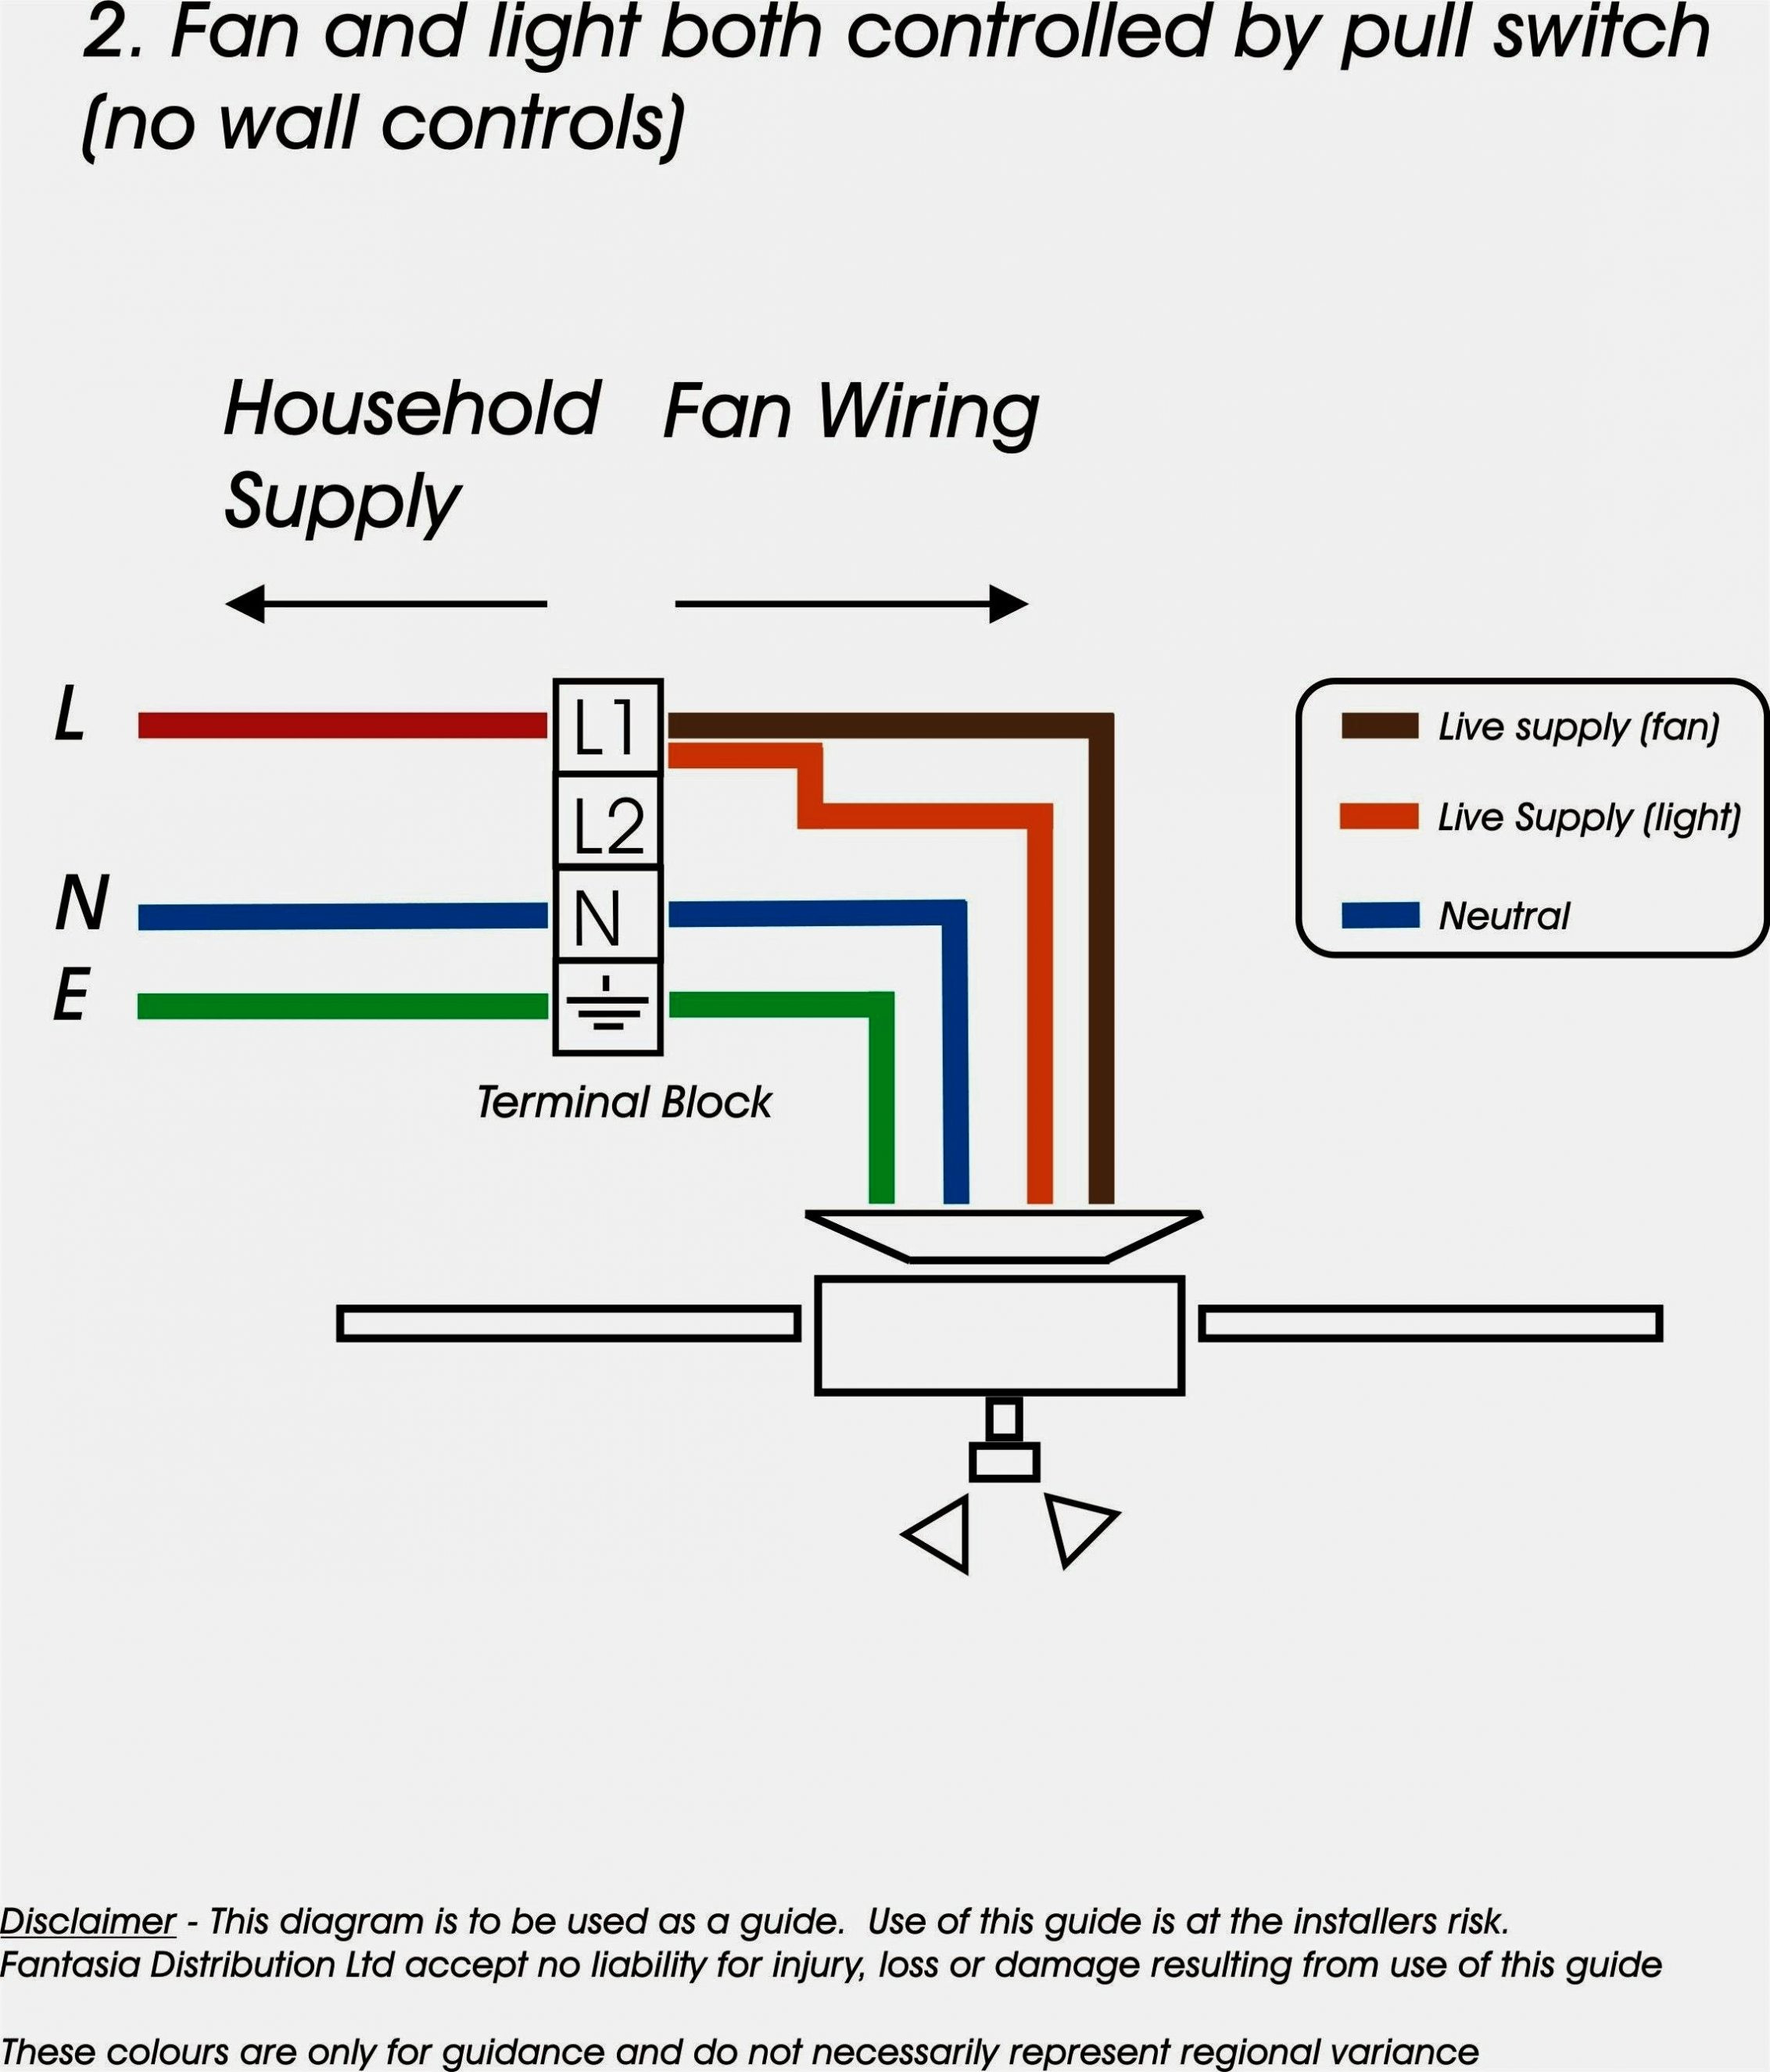 ceiling fan wiring diagram 3 speed Collection-ceiling fan wiring diagram 3 speed Collection Ceiling Fan Pull Chain Switch Wiring Diagram Best 12-t